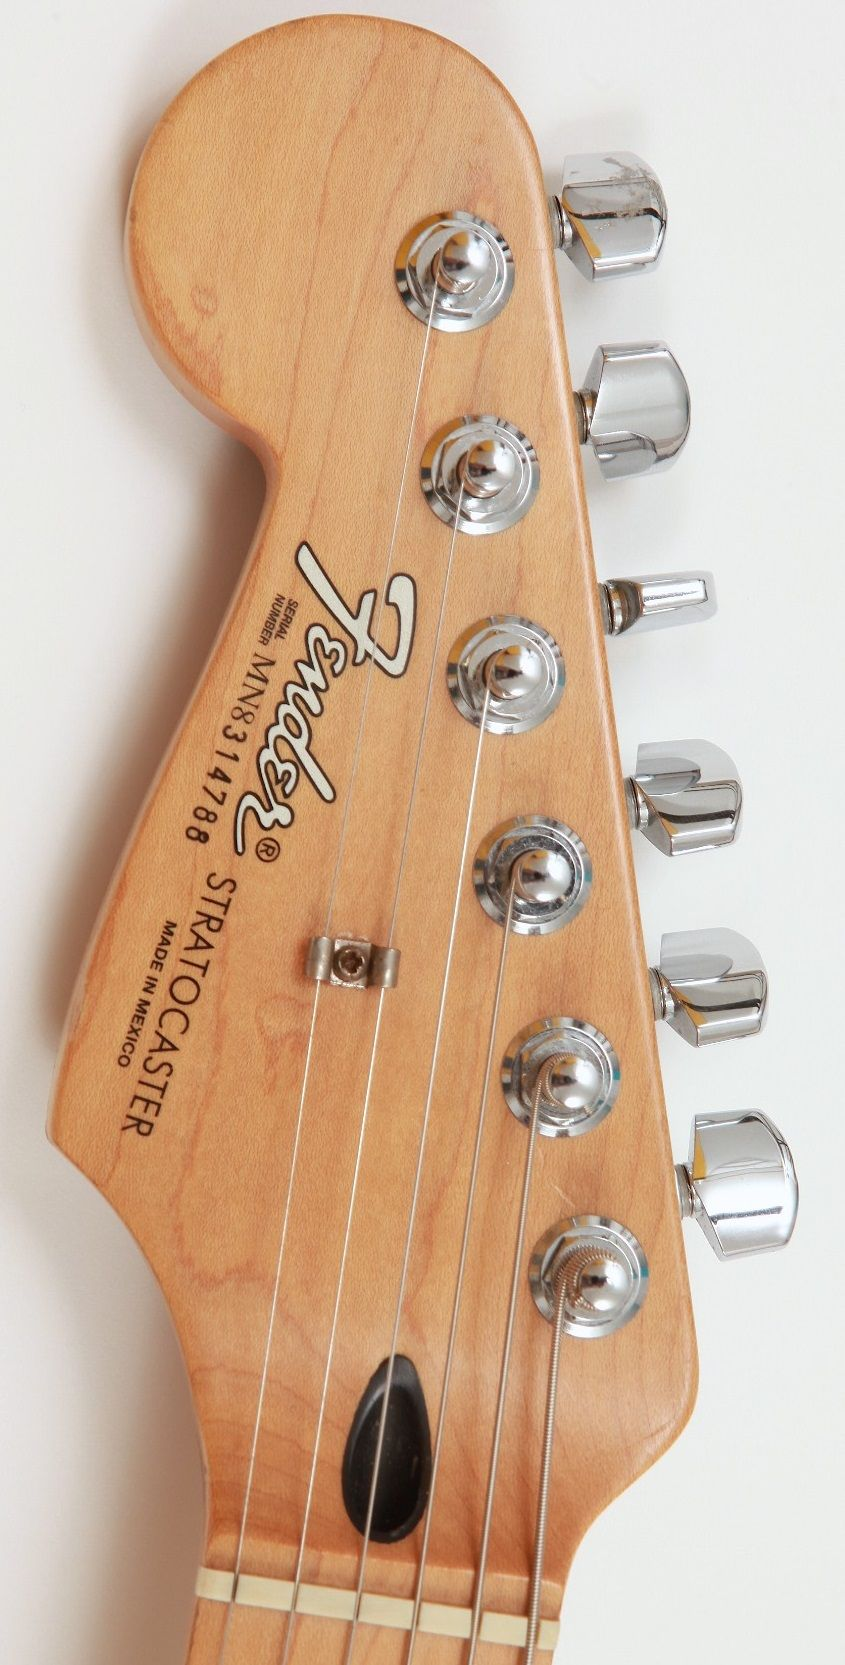 Fender Stratocaster Lefty Mexico With Images Fender